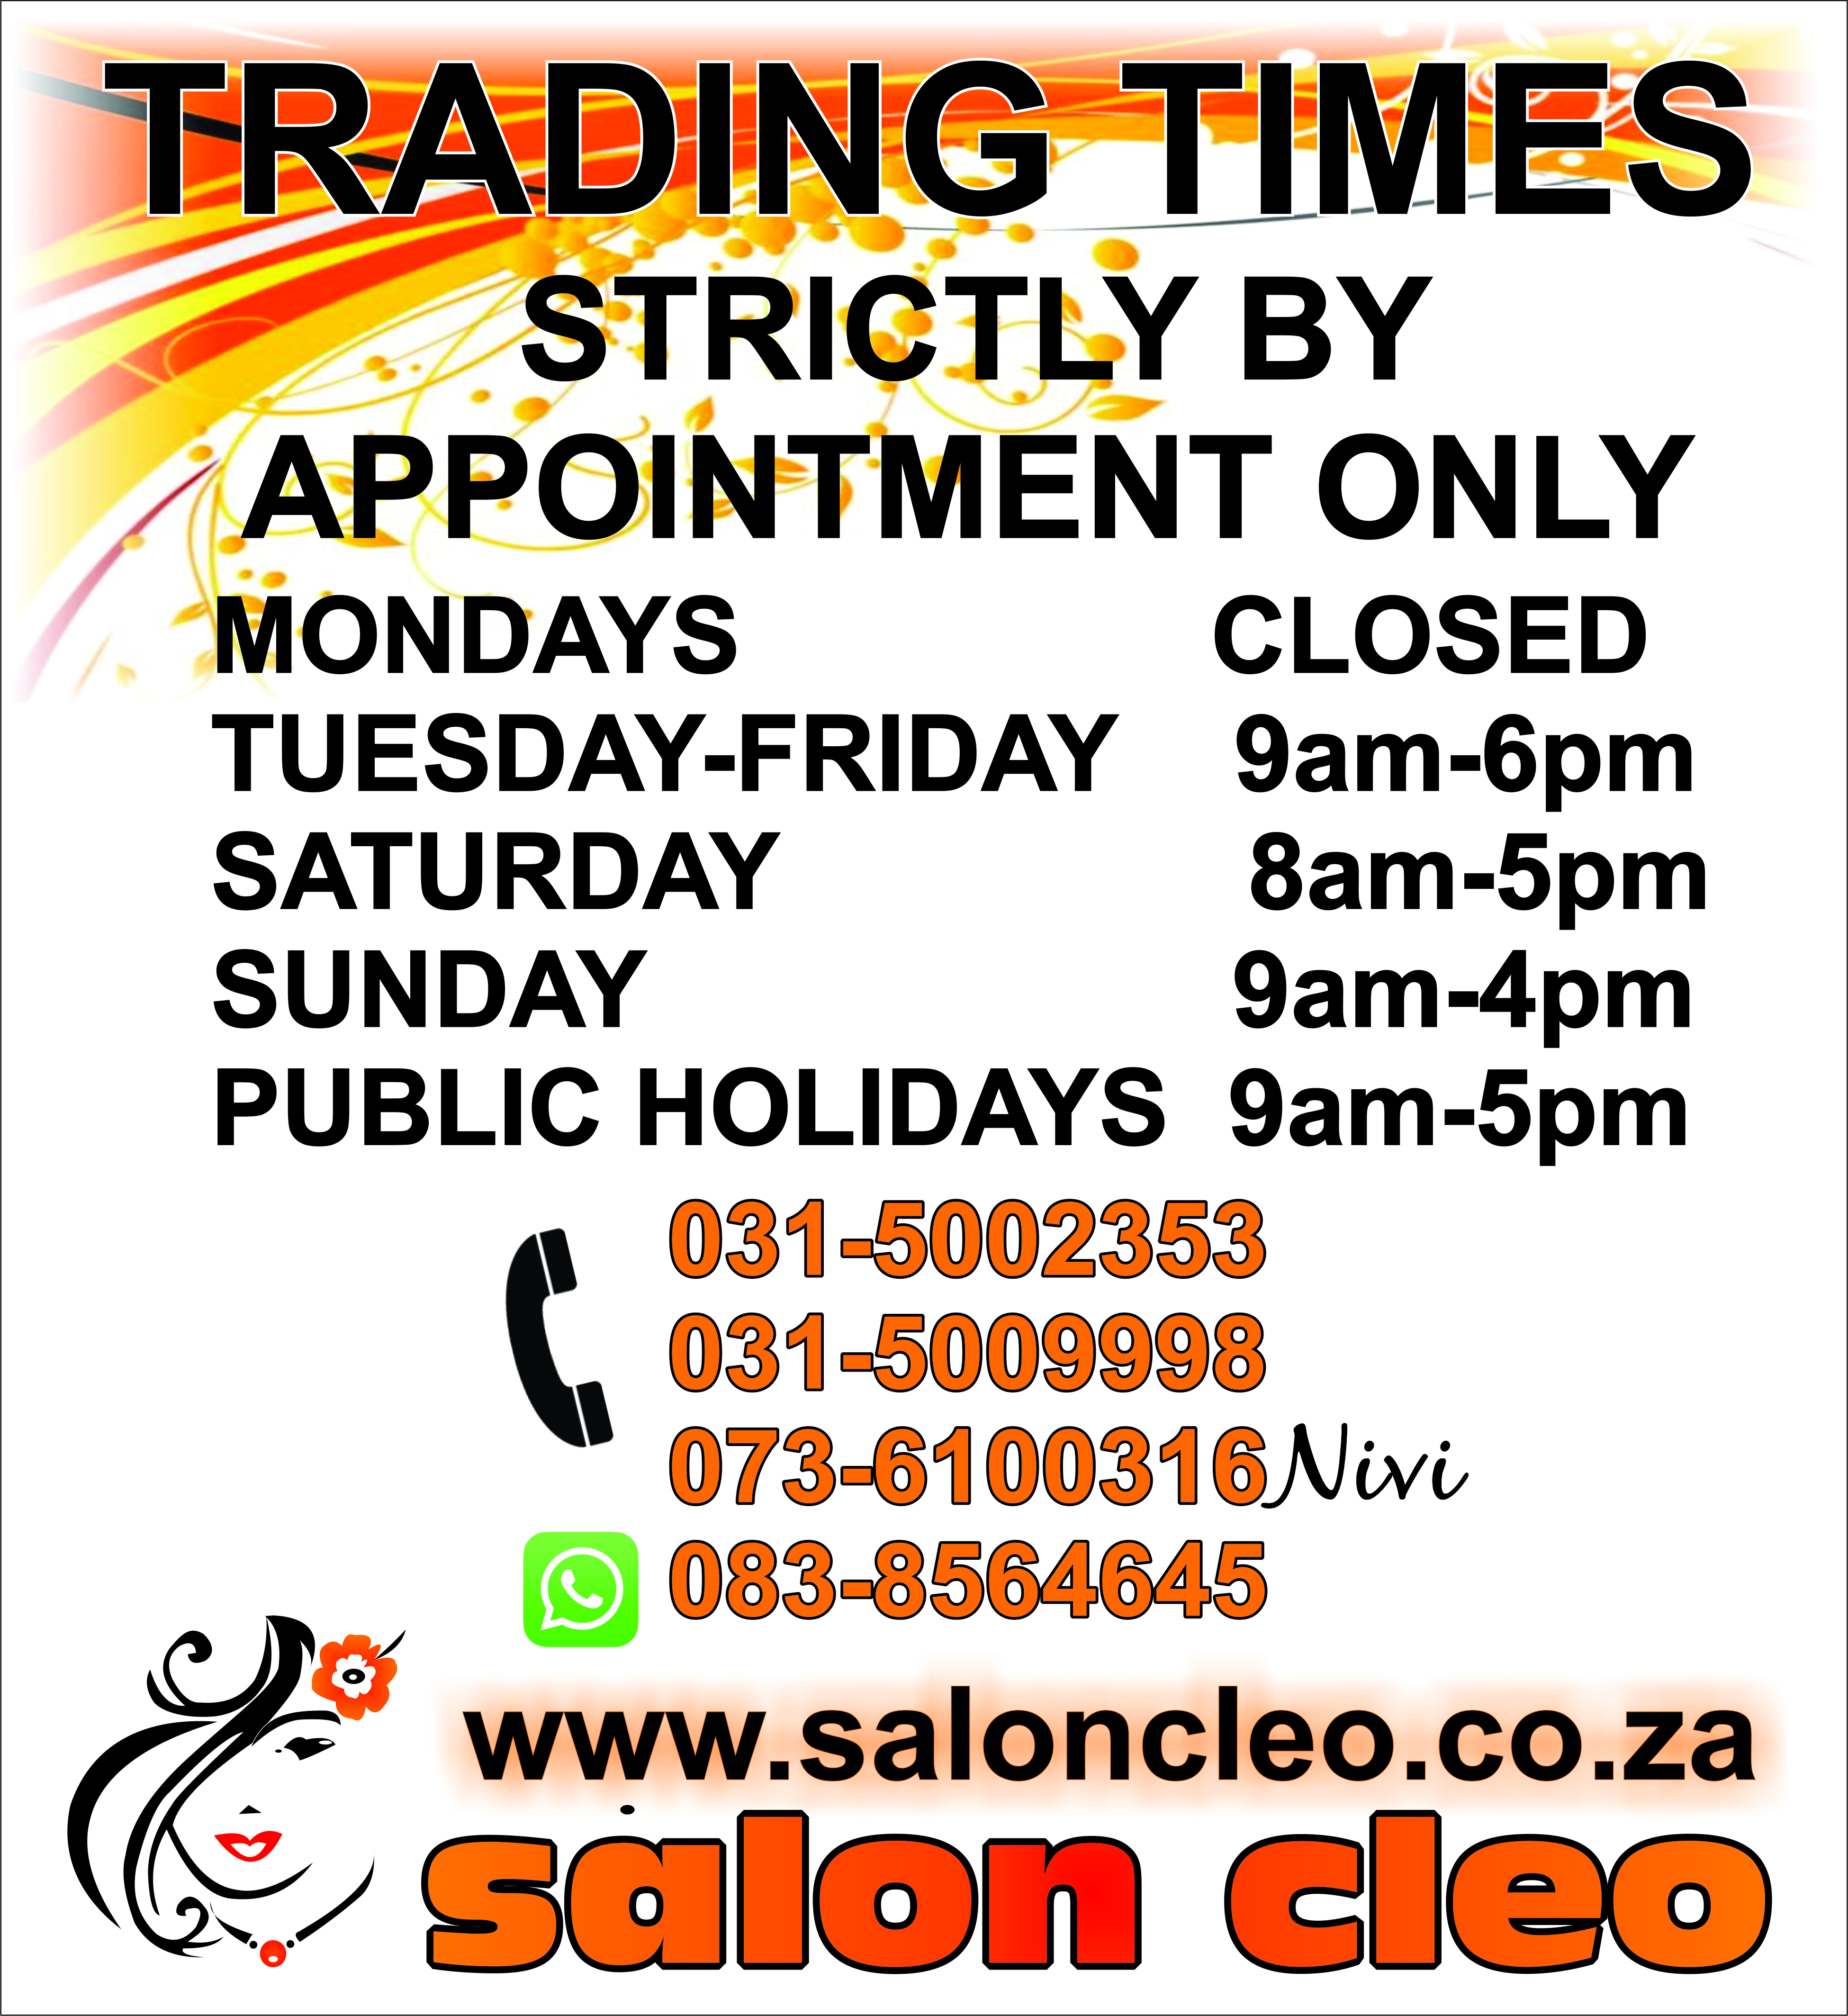 SALON CLEO FOR A NEW GENERATION IN HAIR SALONS KZN 0315009998